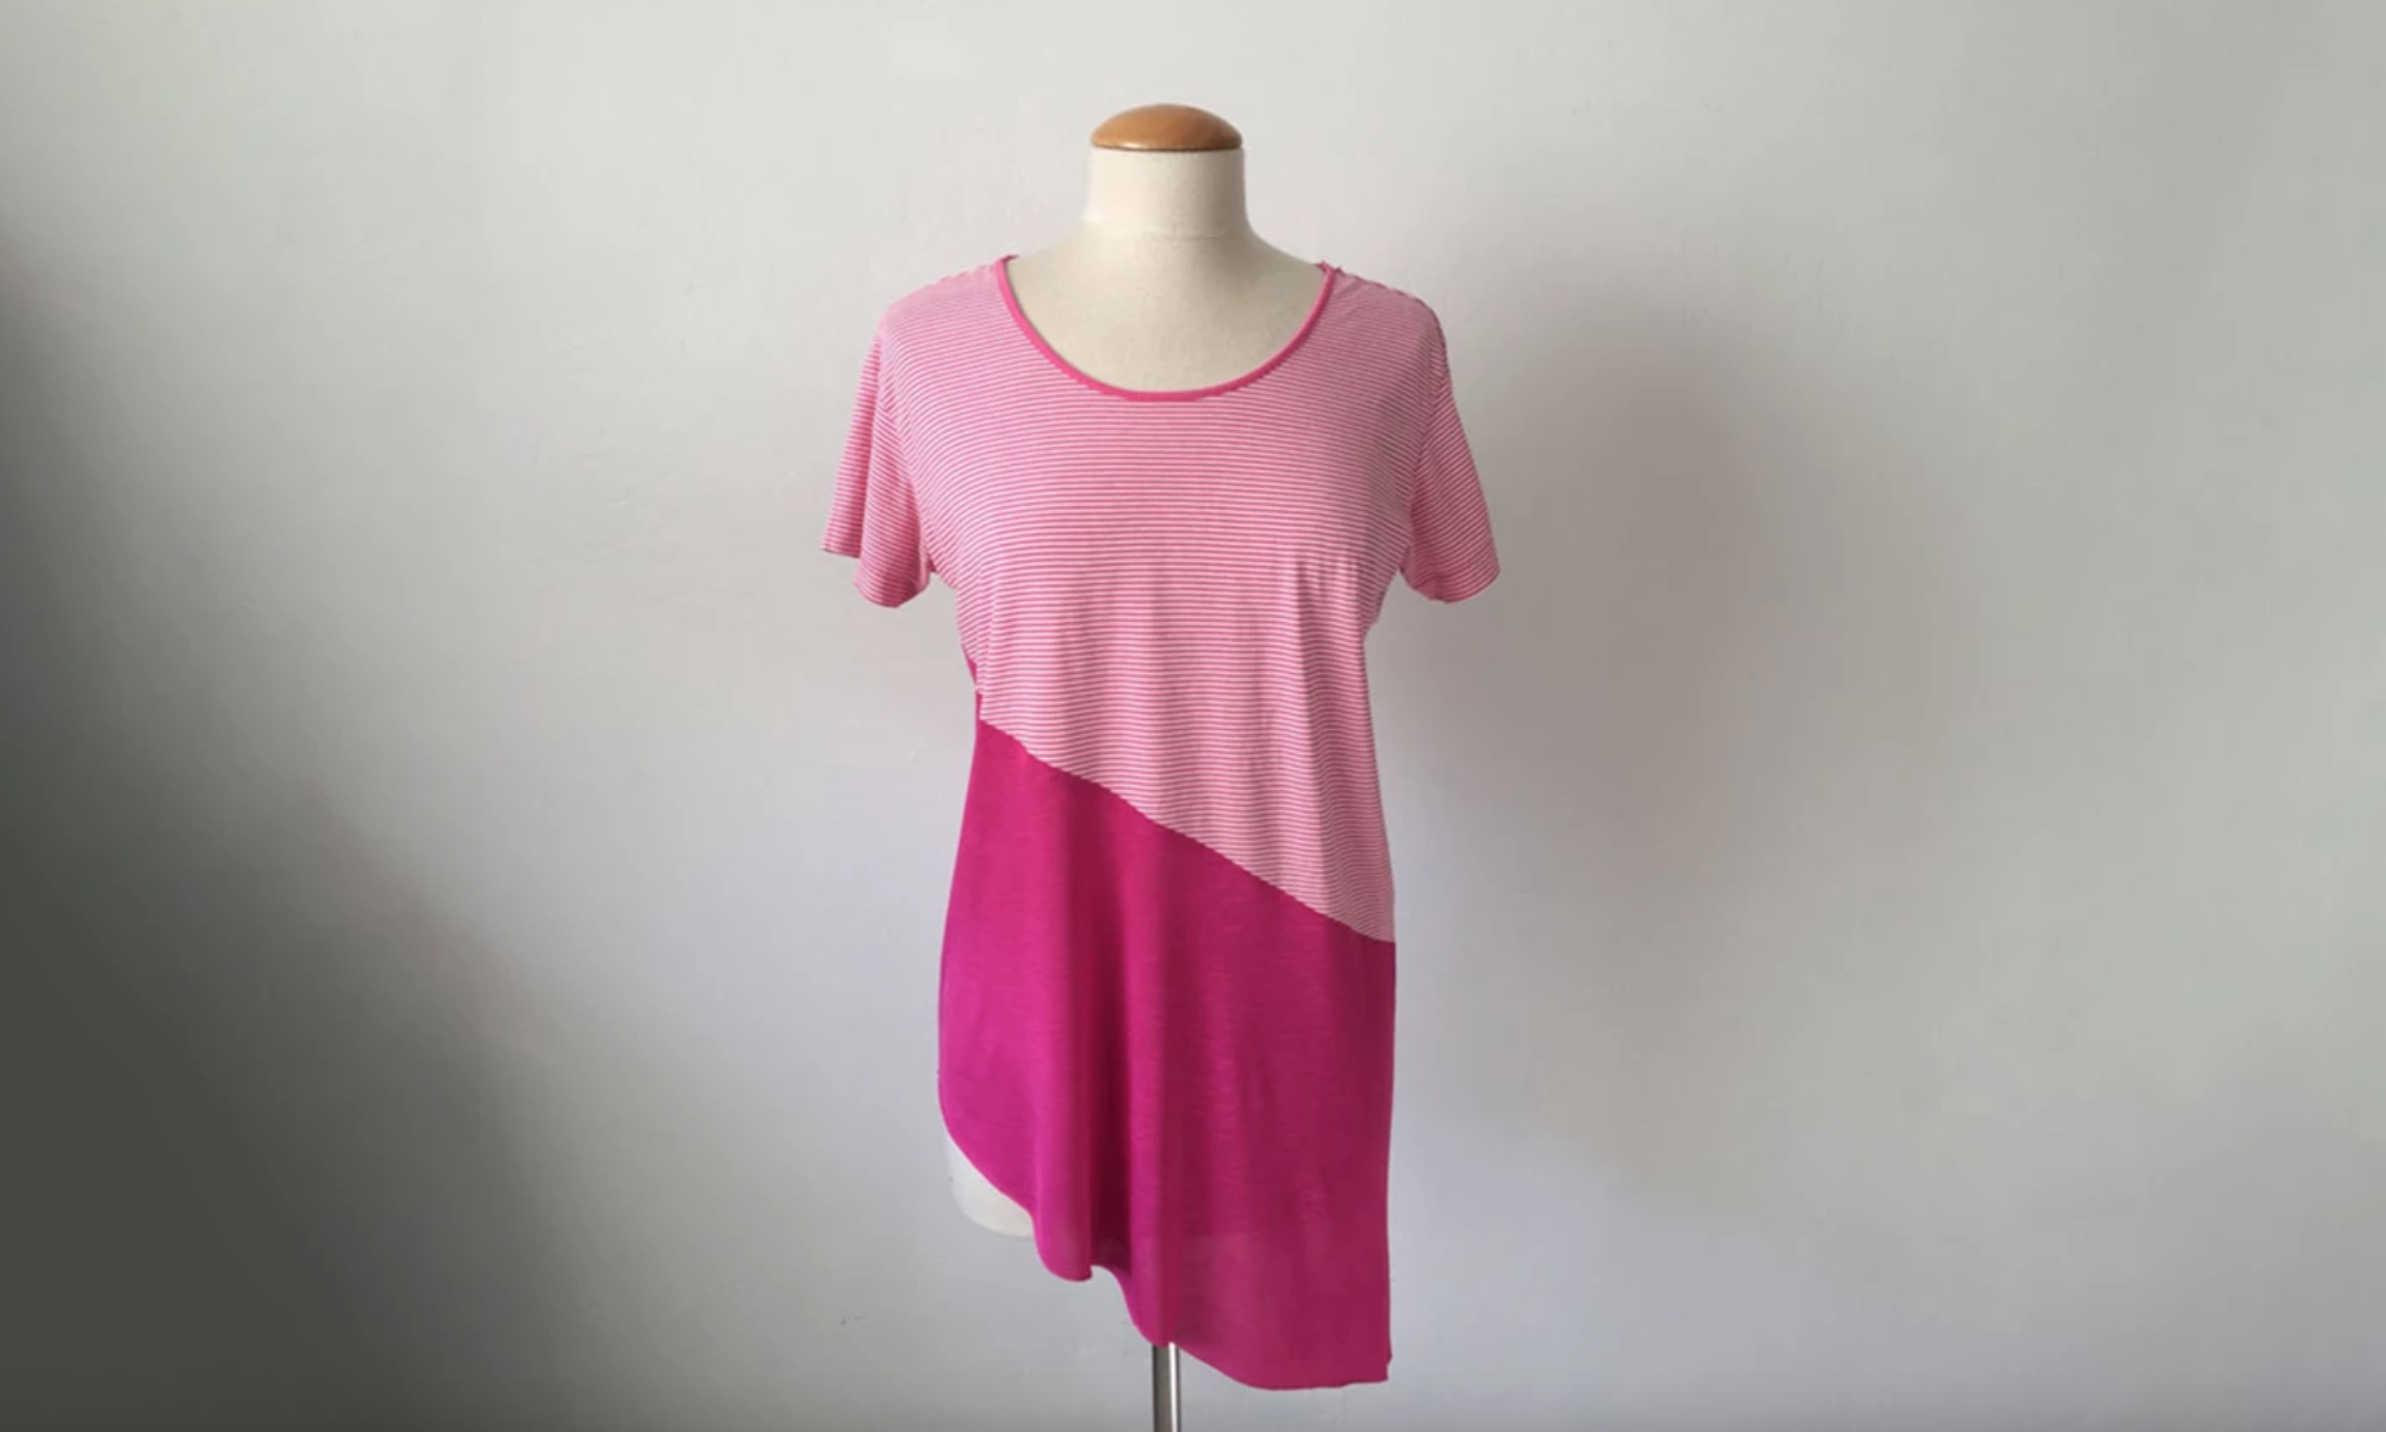 upcycled colorblock t-shirt